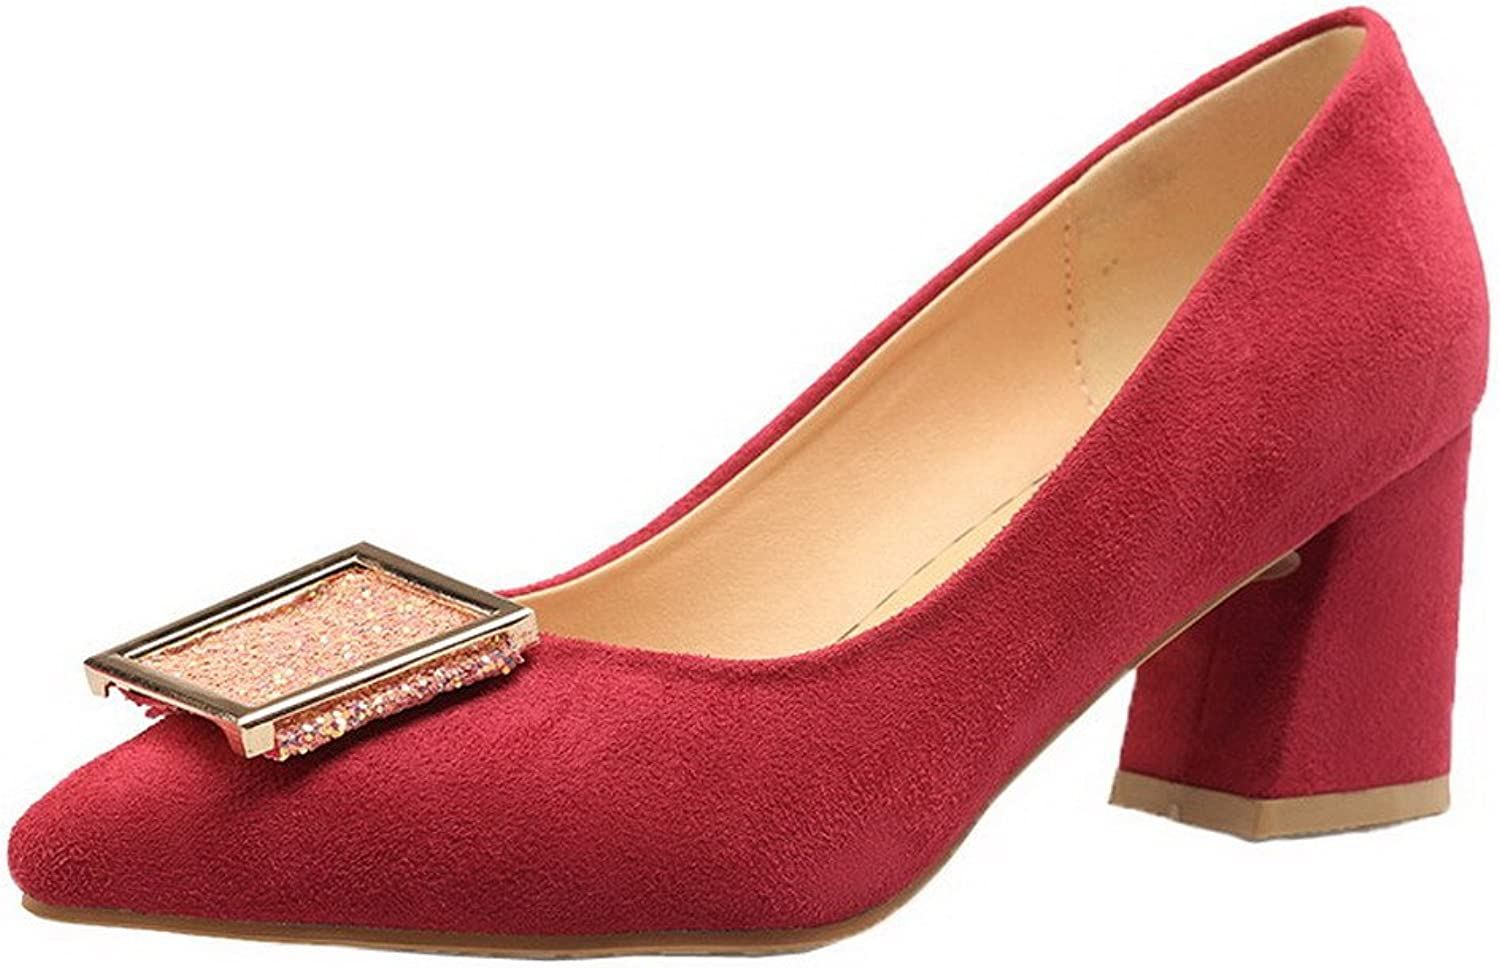 AmoonyFashion Women's Closed-Toe Imitated Suede Solid Kitten-Heels Pumps-shoes